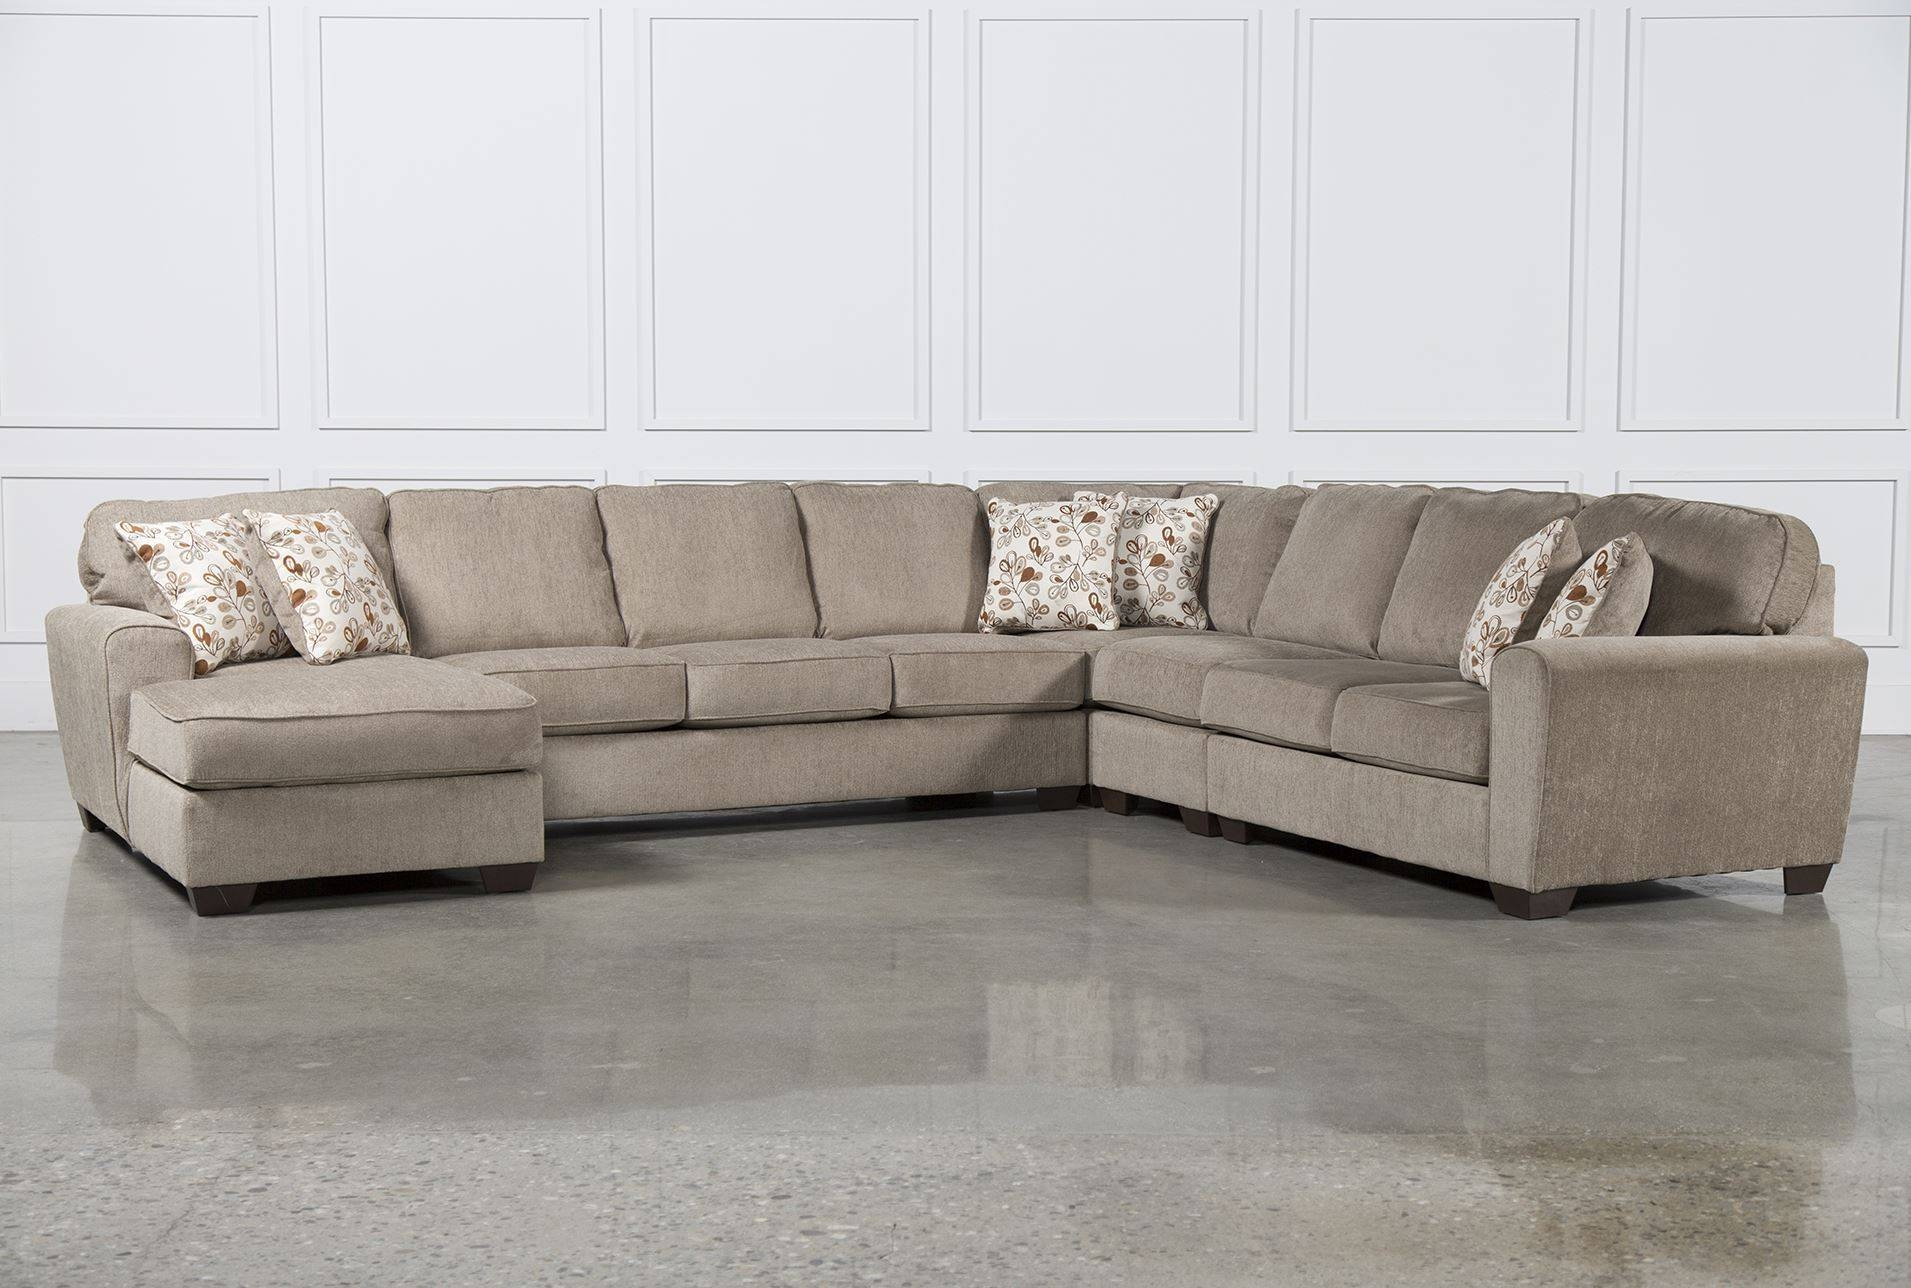 Condo Sectional Sofas - Leather Sectional Sofa within Condo Sectional Sofas (Image 6 of 30)